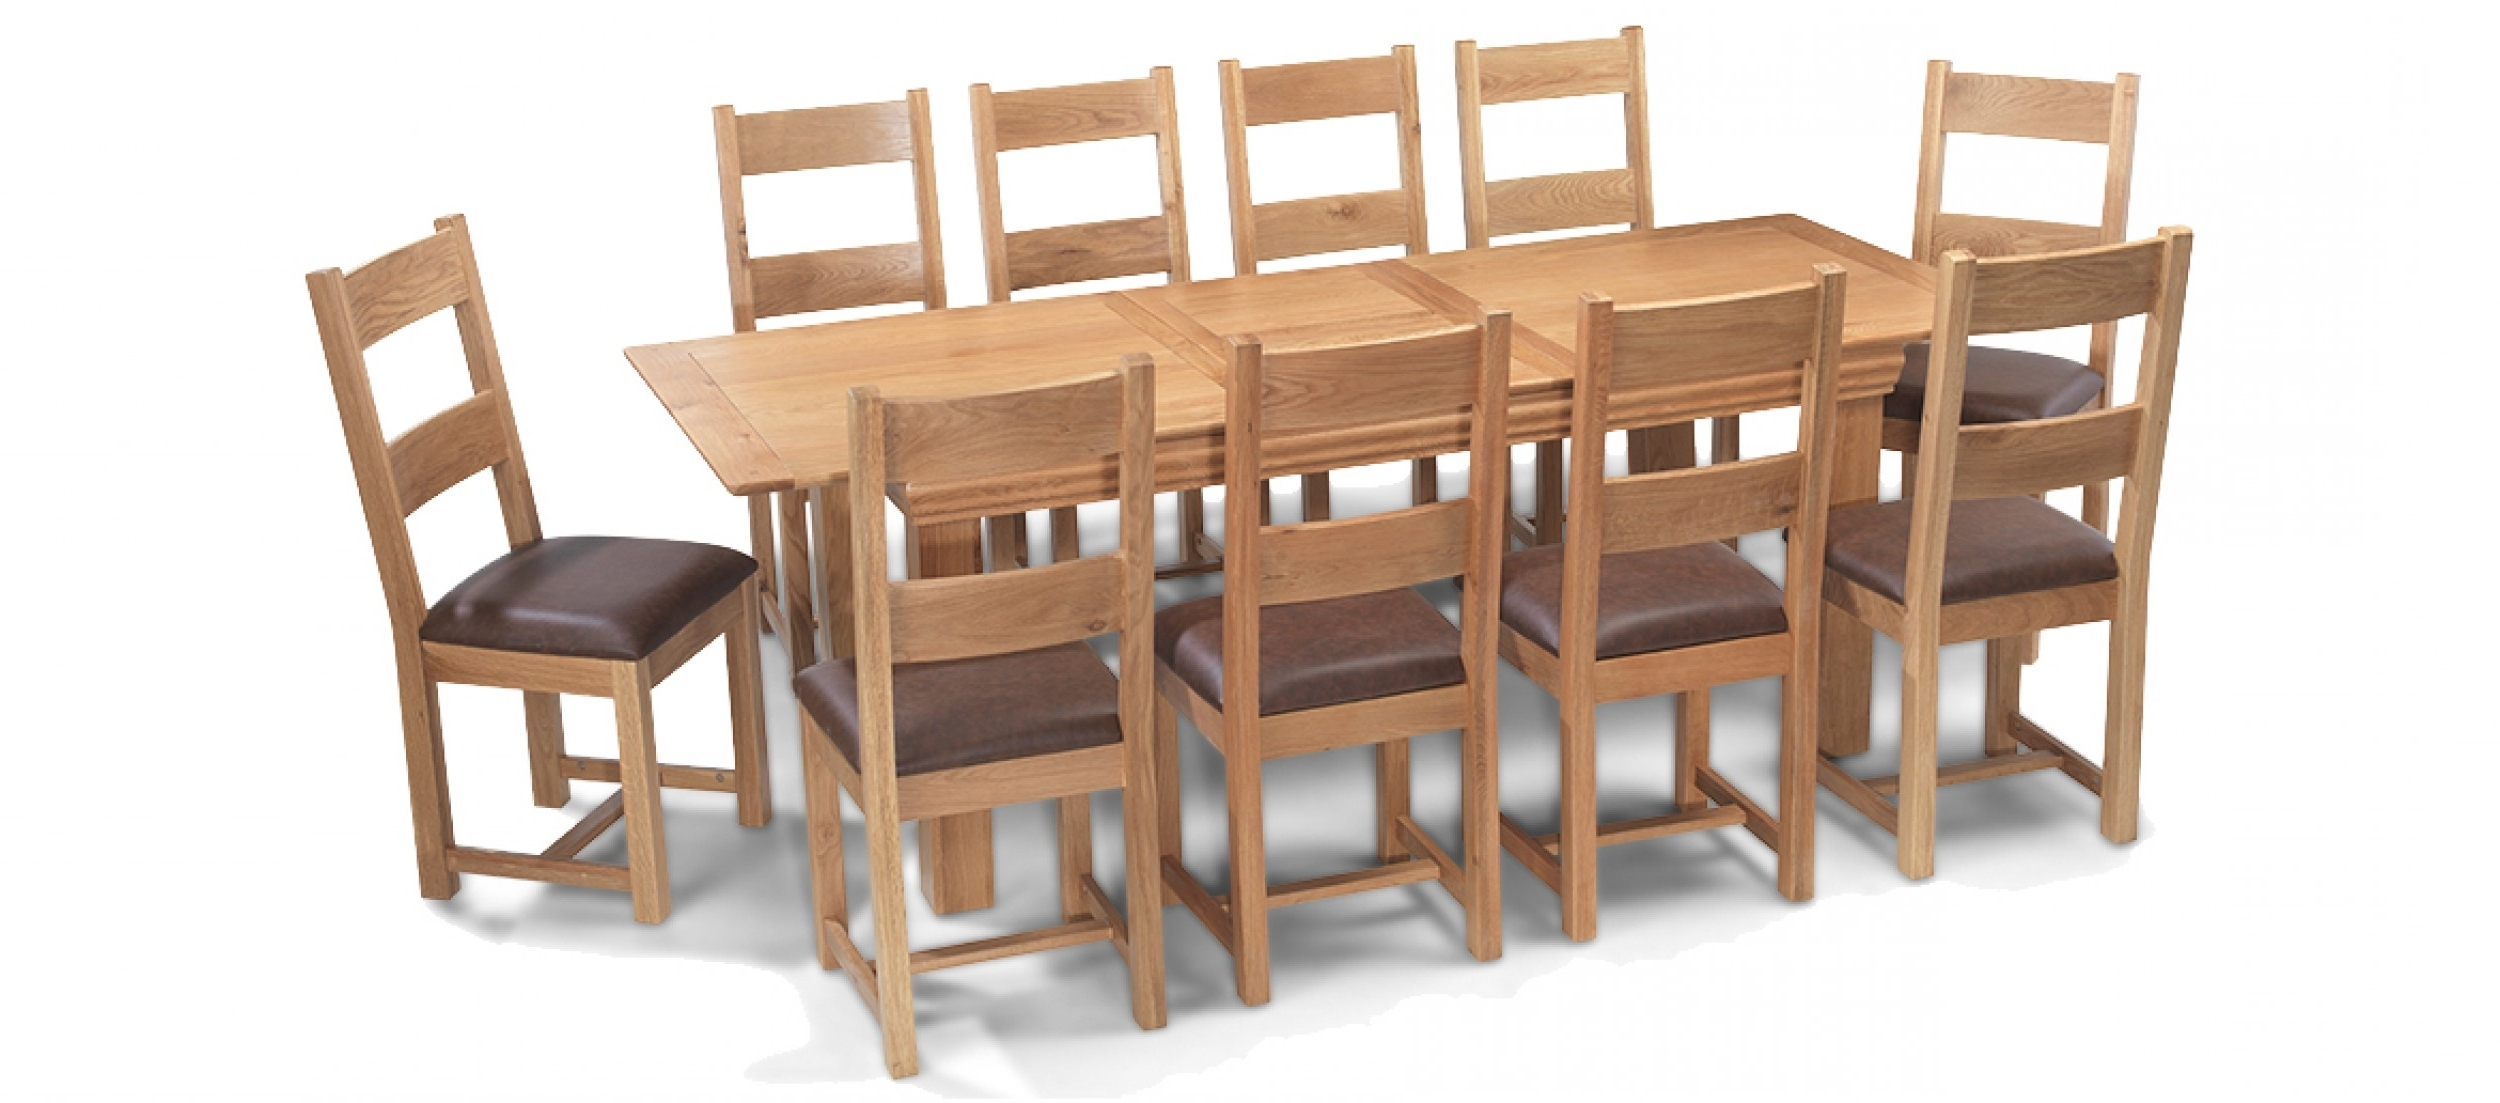 Constance Oak 180 230 Cm Extending Dining Table And 10 Chairs Pertaining To Recent Dining Table And 10 Chairs (View 2 of 25)